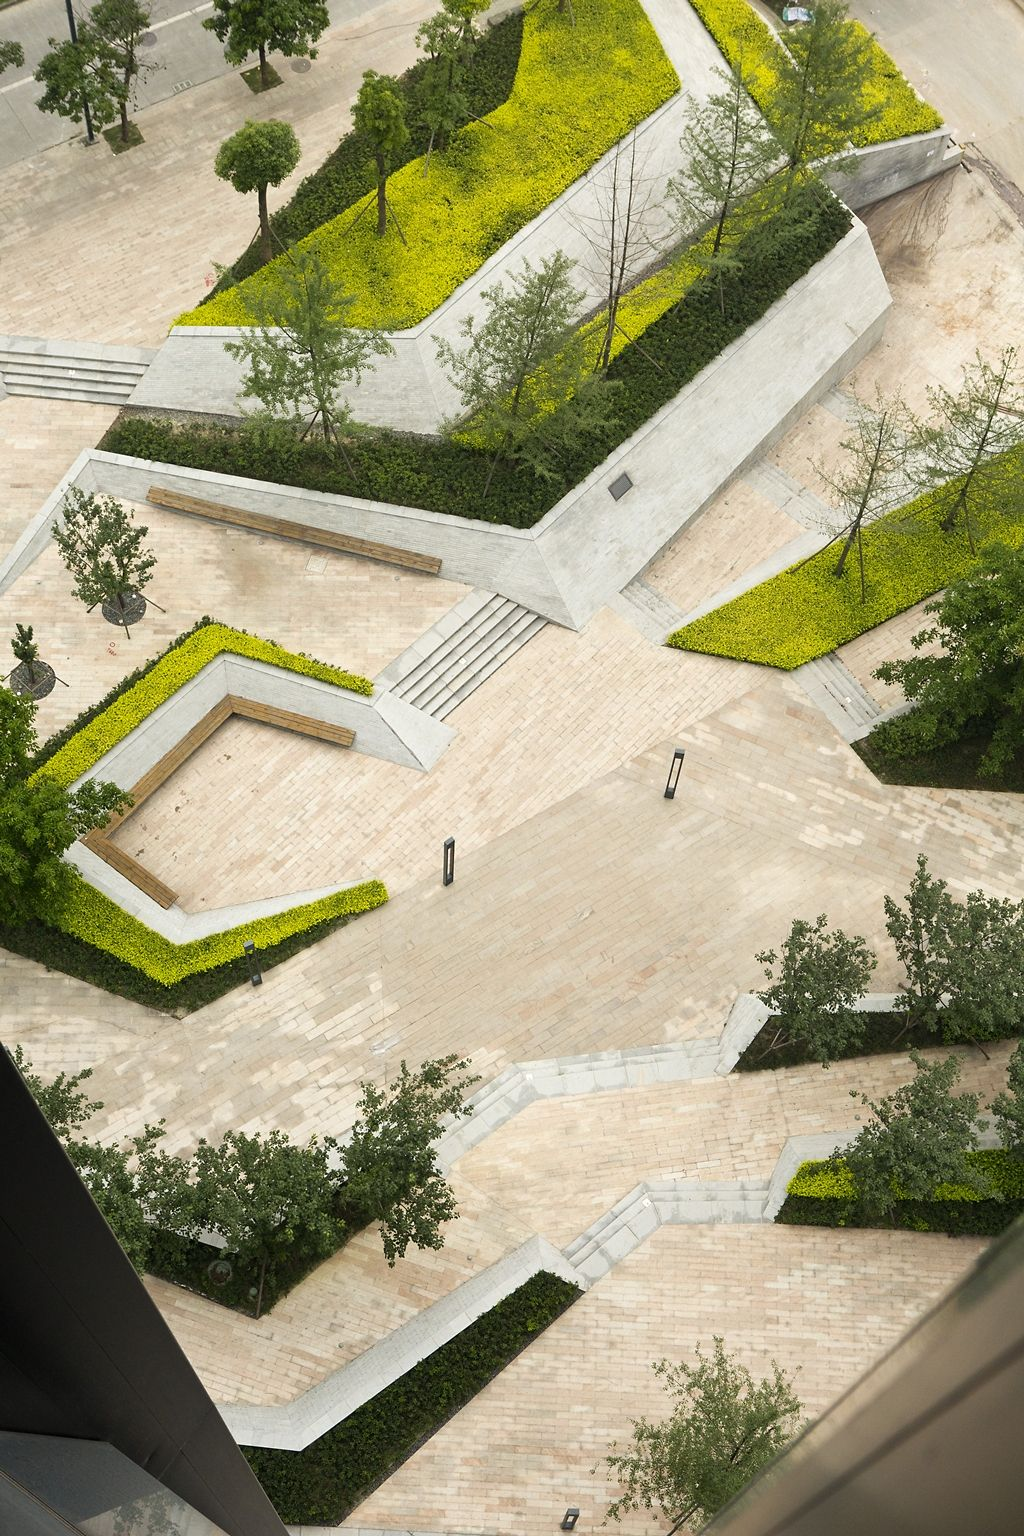 Fantasia mixed use landscape public spaces chengdu and for Outer space design landscape architects